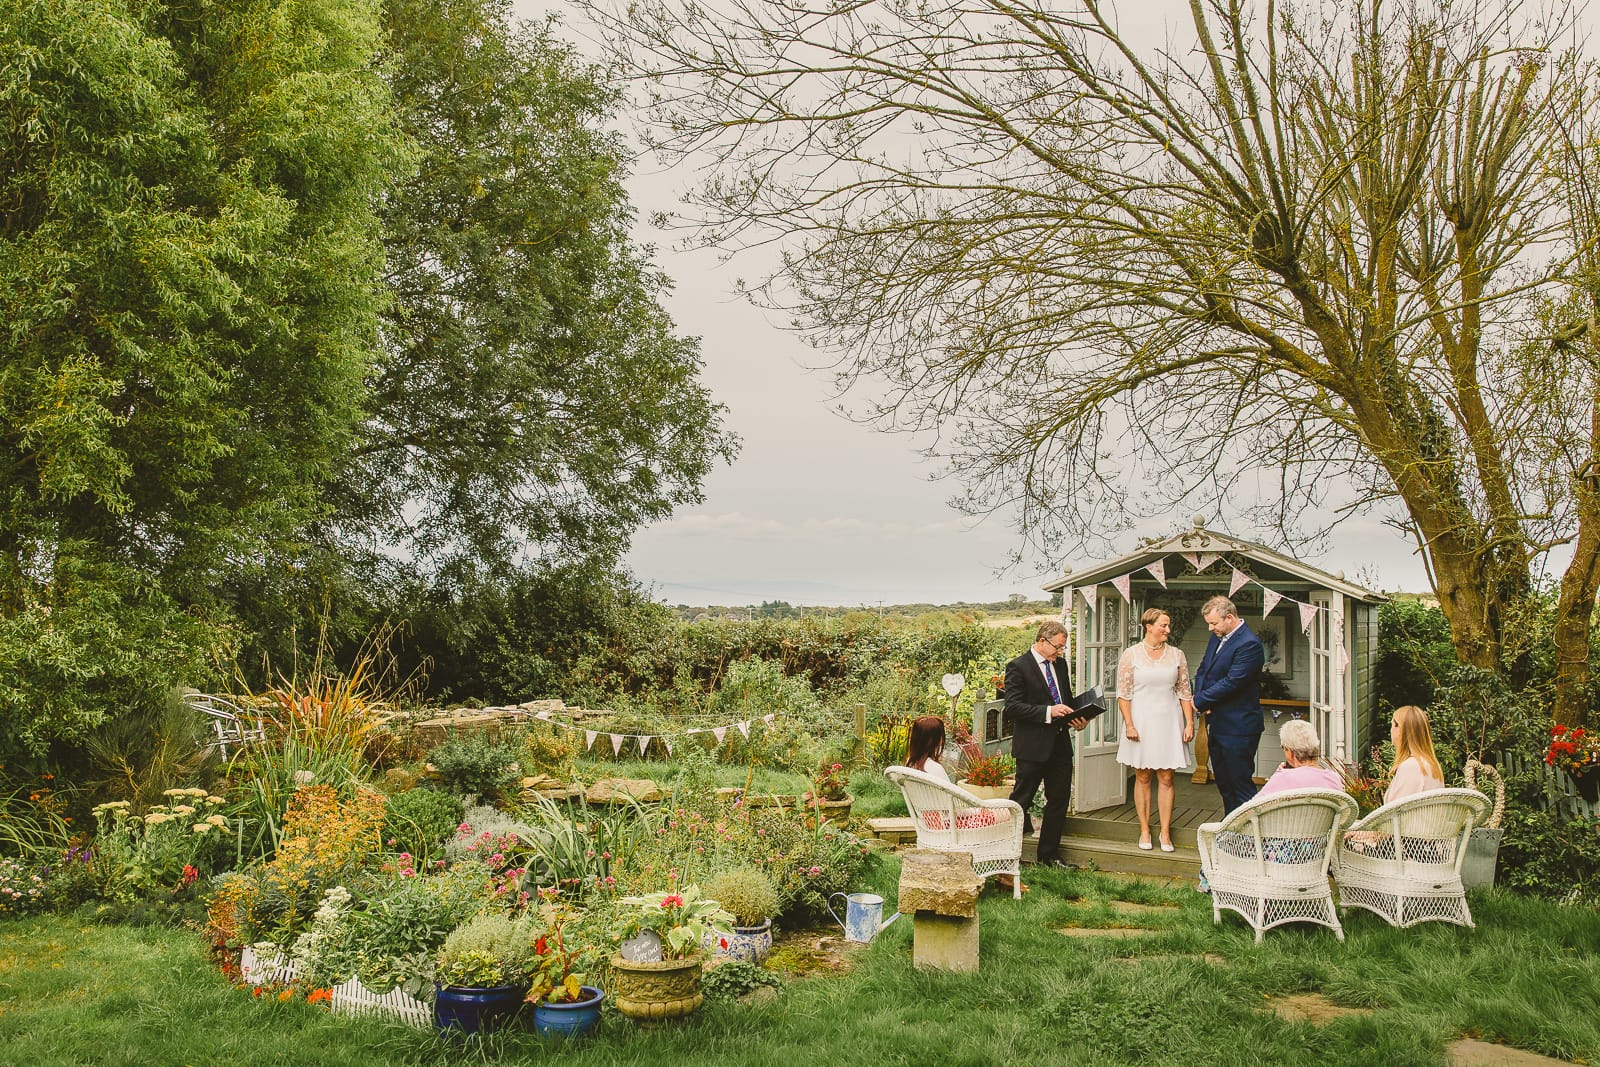 Intimate Dorset wedding ceremony